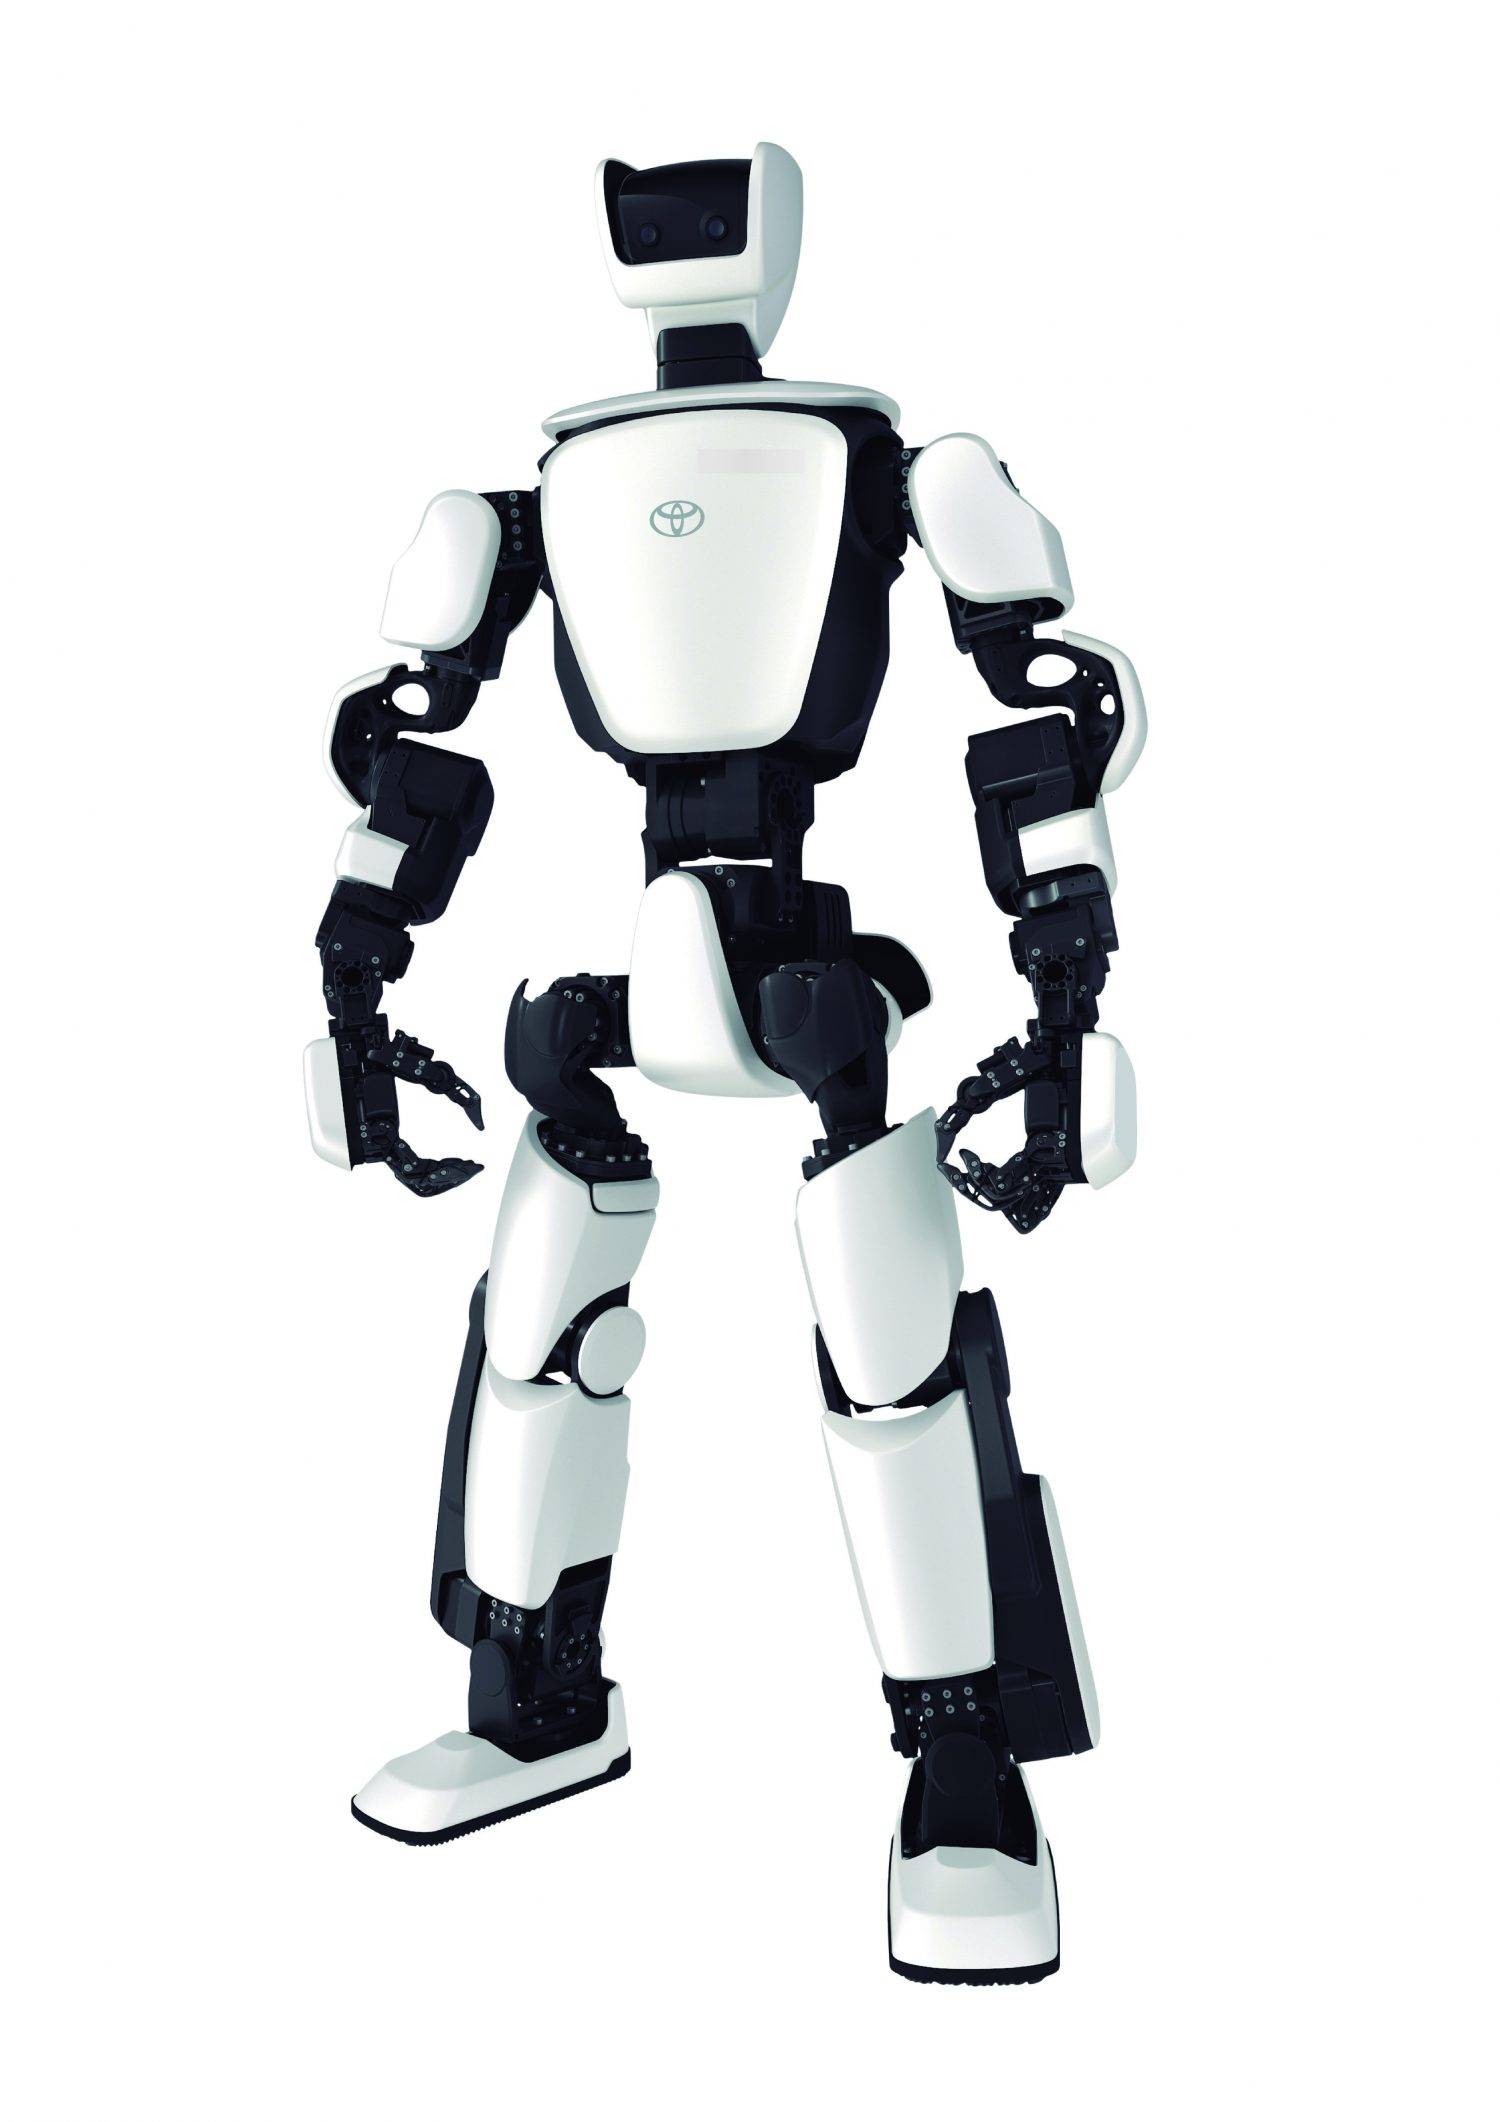 T-HR3_Humanoid_Robot_Latest-compressor-1500x2122